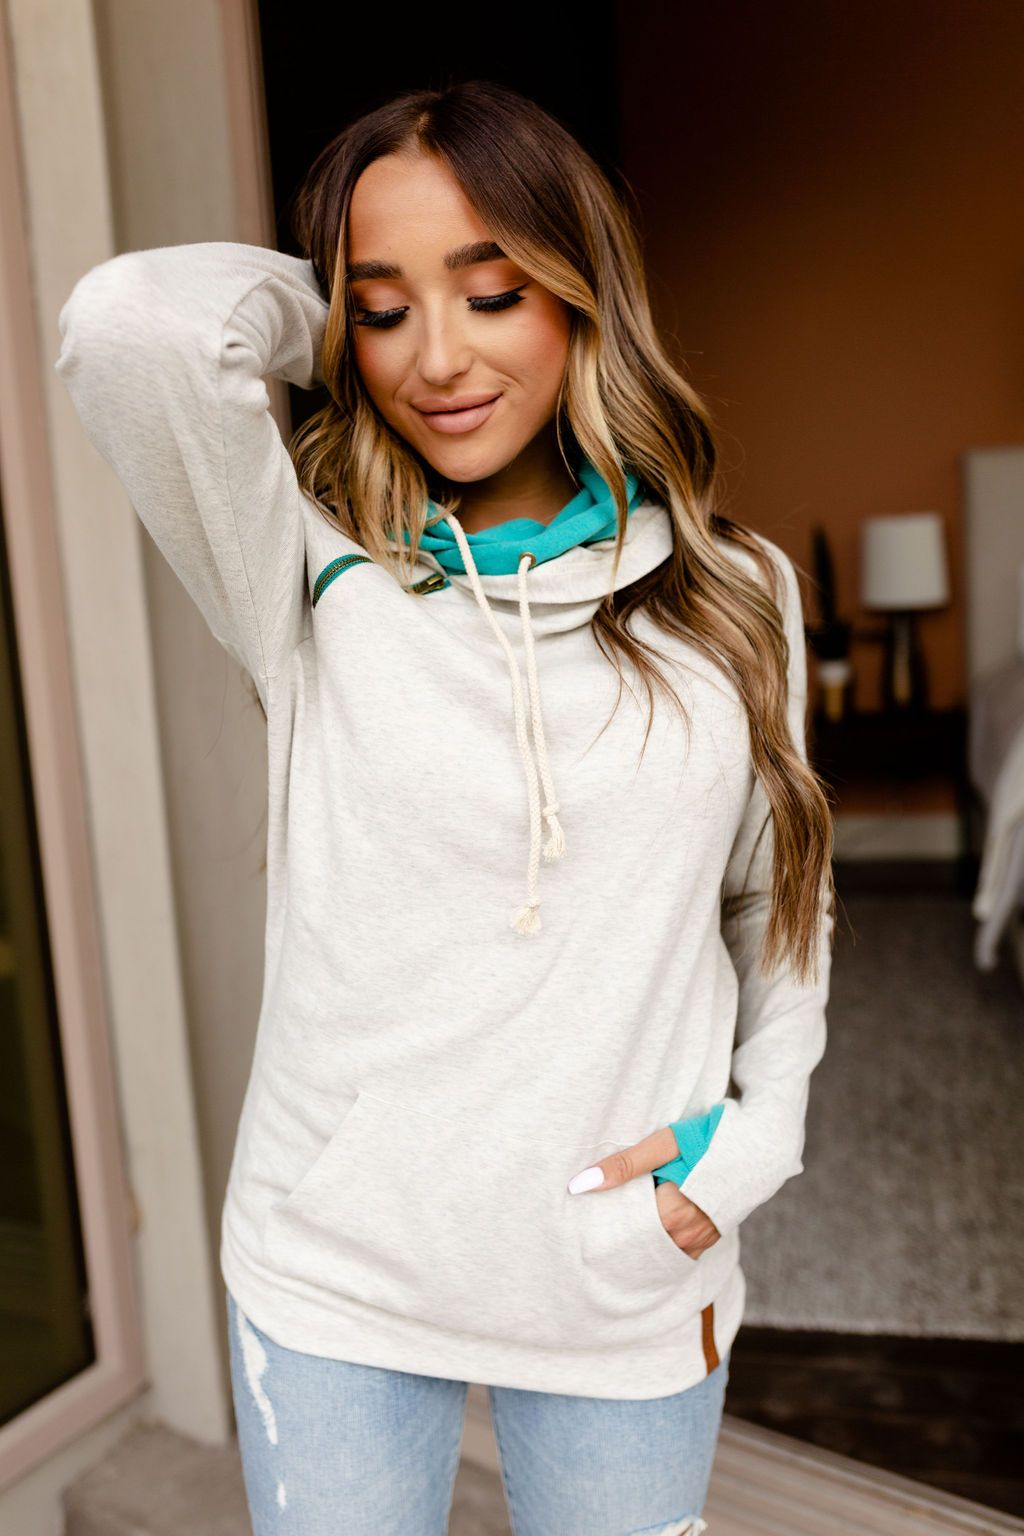 The Basic Doublehood Sweatshirt - Splash Of Teal-[option4]-[option5]-[option6]-[option7]-[option8]-Womens-Clothing-Shop